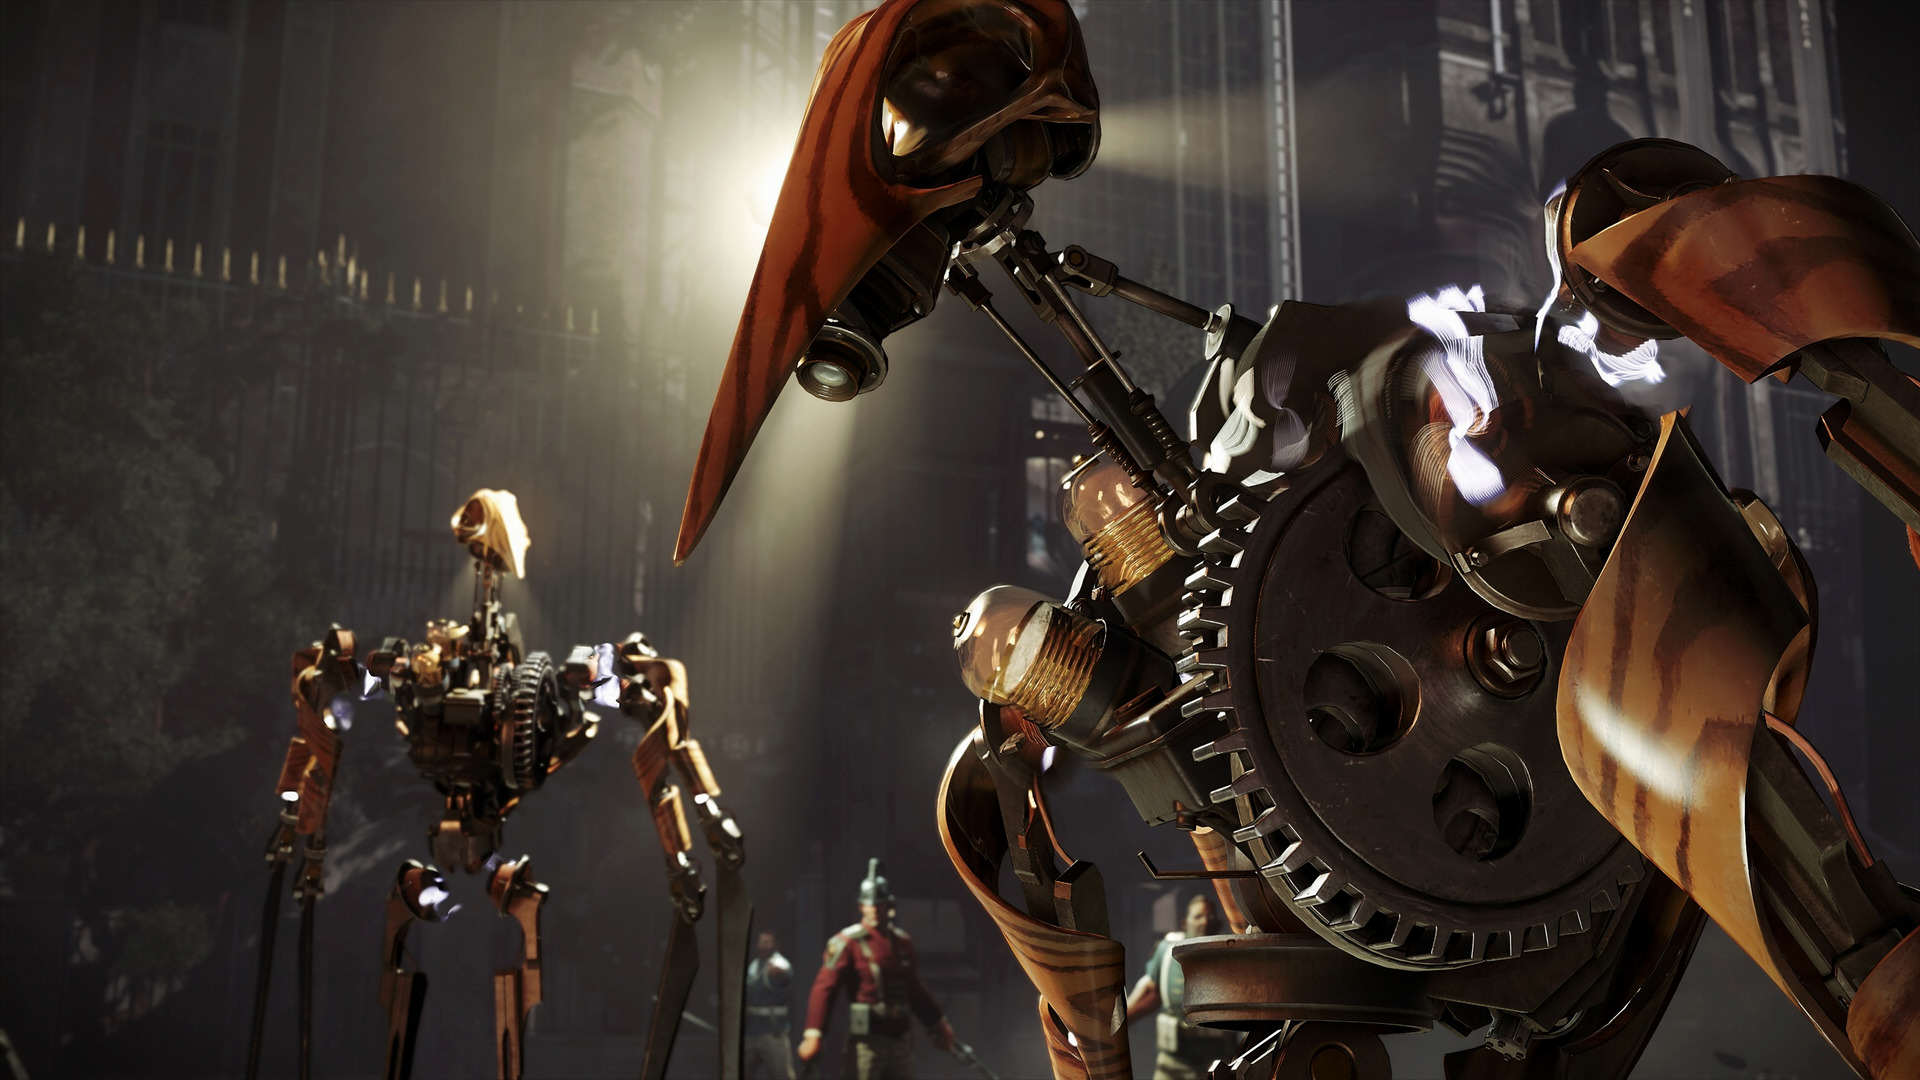 Check Out These Gorgeous New Dishonored 2 Screens hCvTOr6